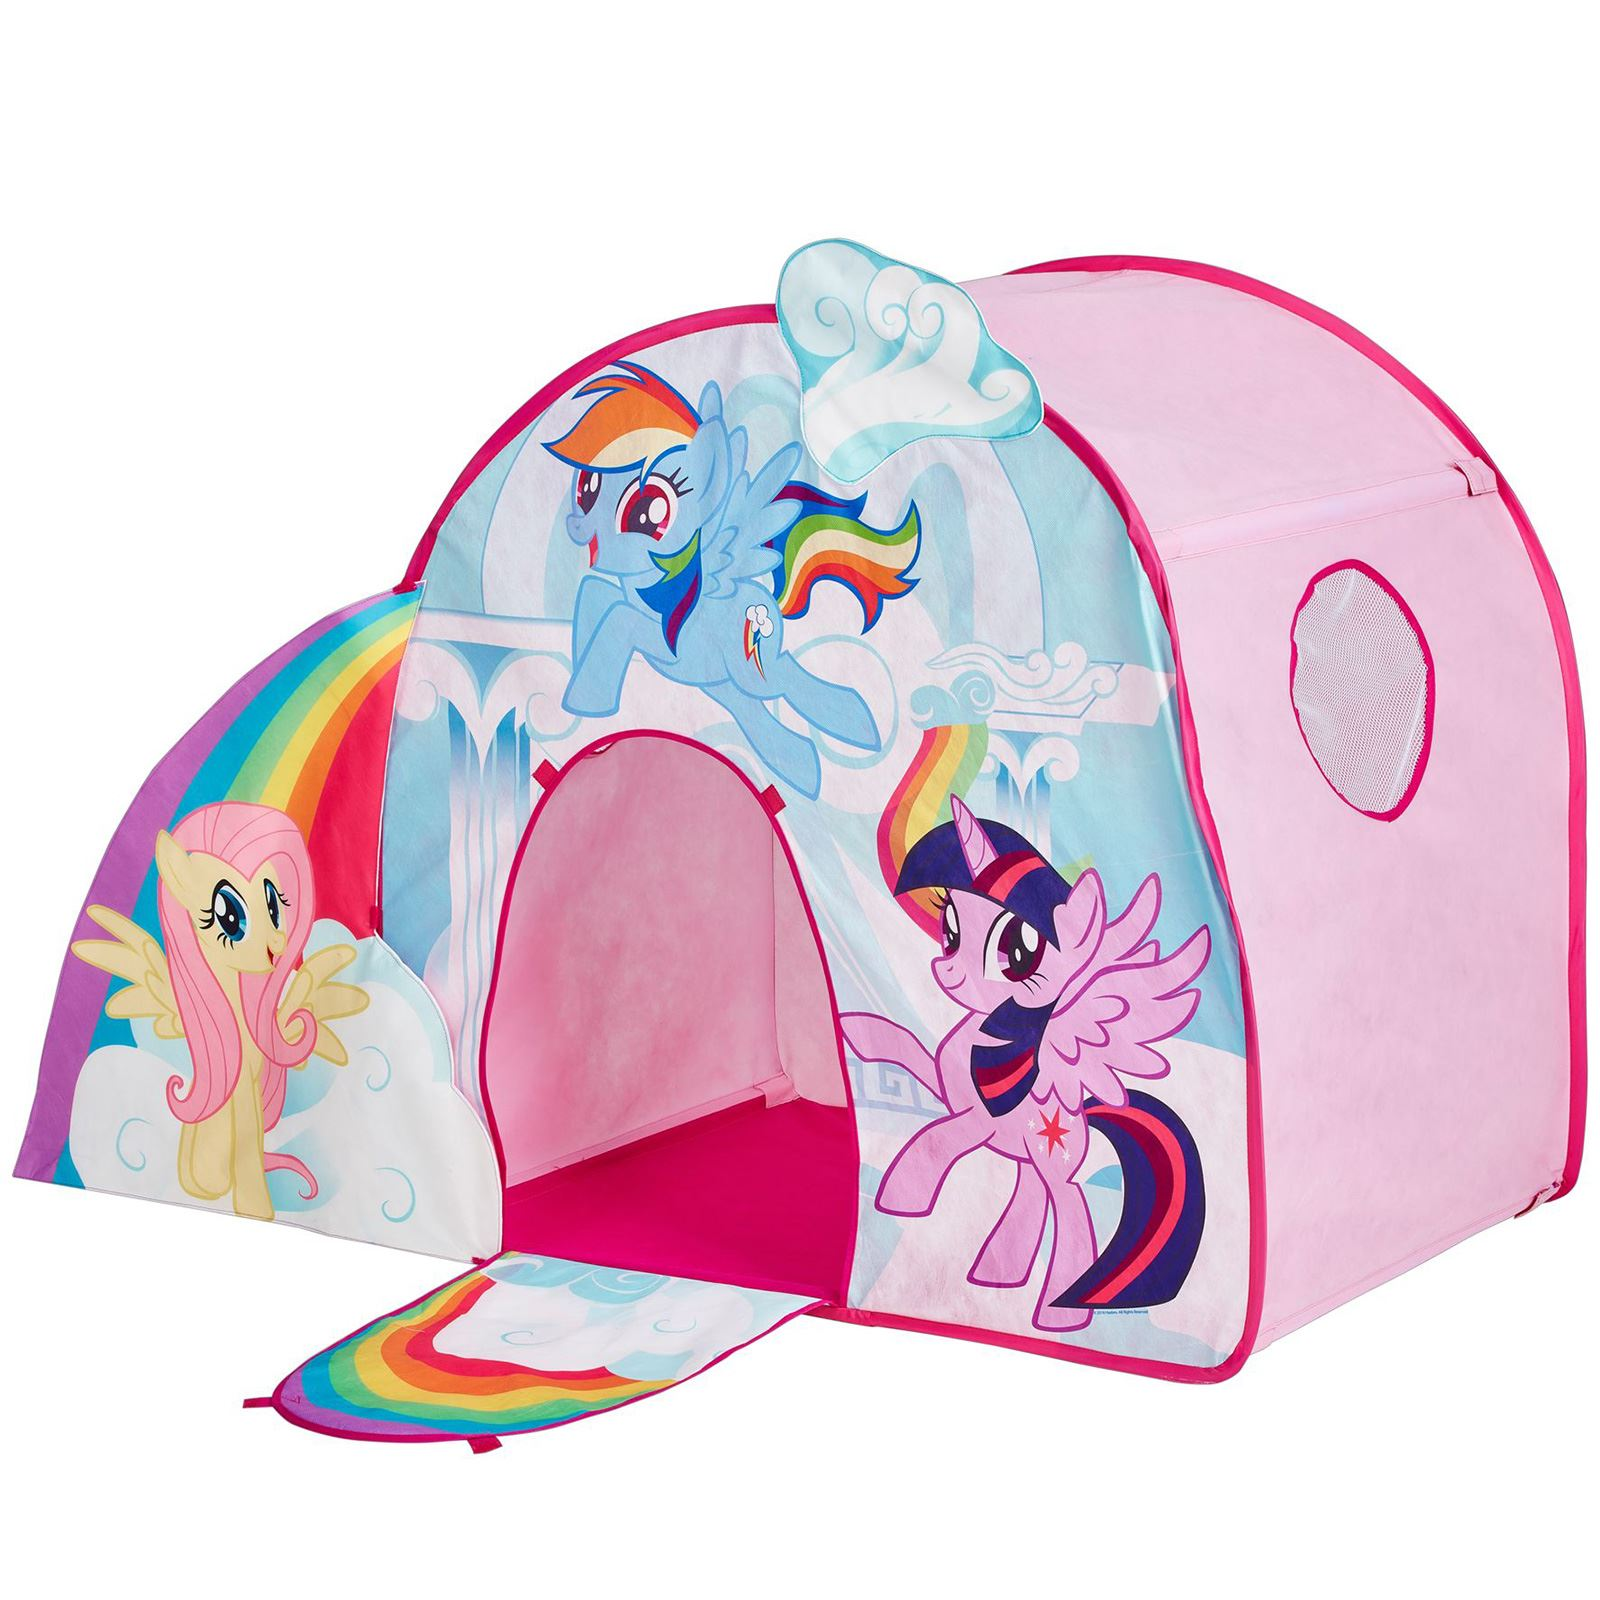 POP-UP-PLAY-TENTS-FEATURE-KIDS-DISNEY-PRINCESS-  sc 1 st  eBay : pop tents for kids - memphite.com